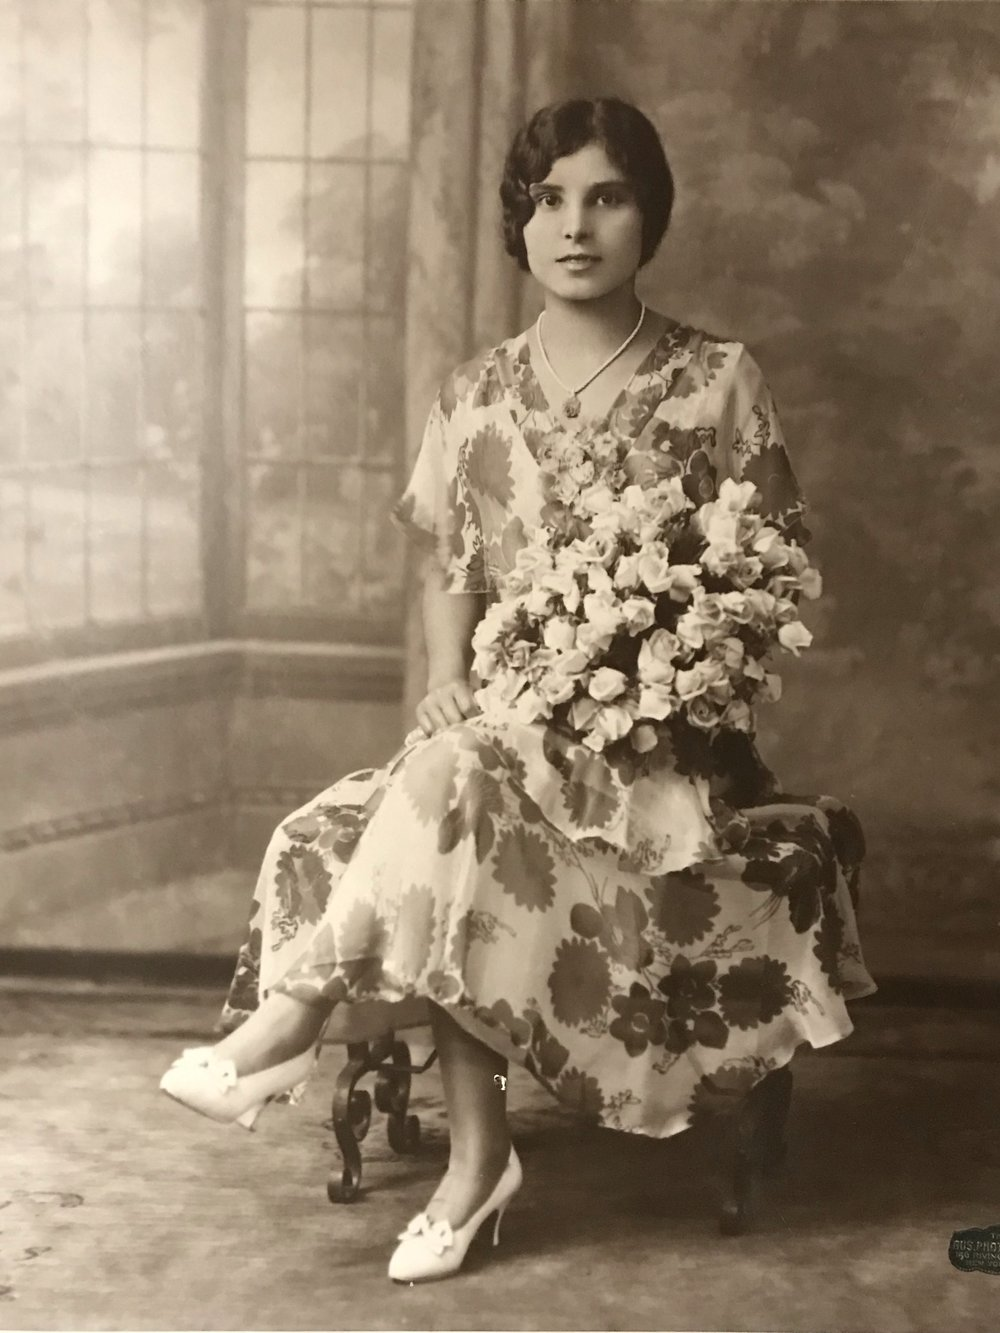 Nonna as a young girl.